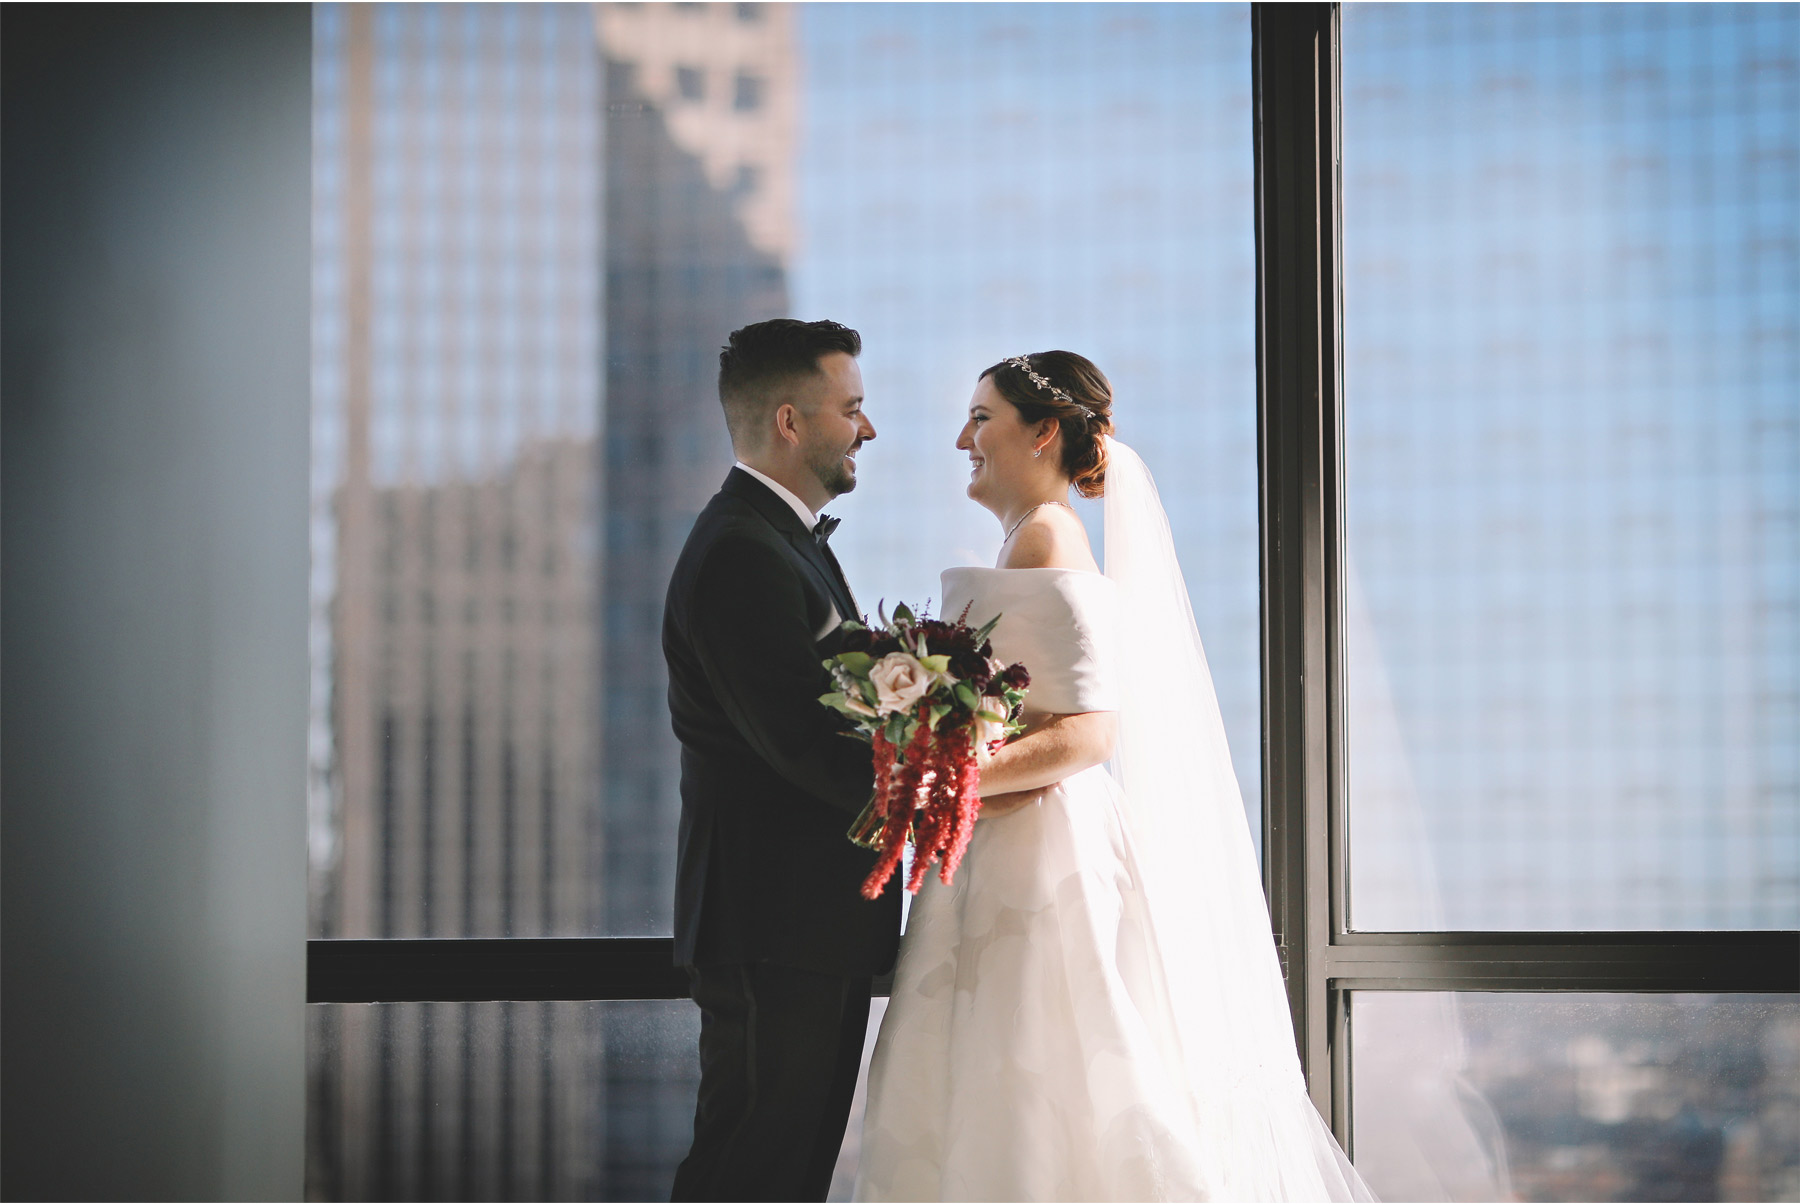 08-Minneapolis-Minnesota-Wedding-Photography-by-Vick-Photography-Loews-Hotel-First-Look-Downtown-Skyline-Caitlin-and-Alec.jpg